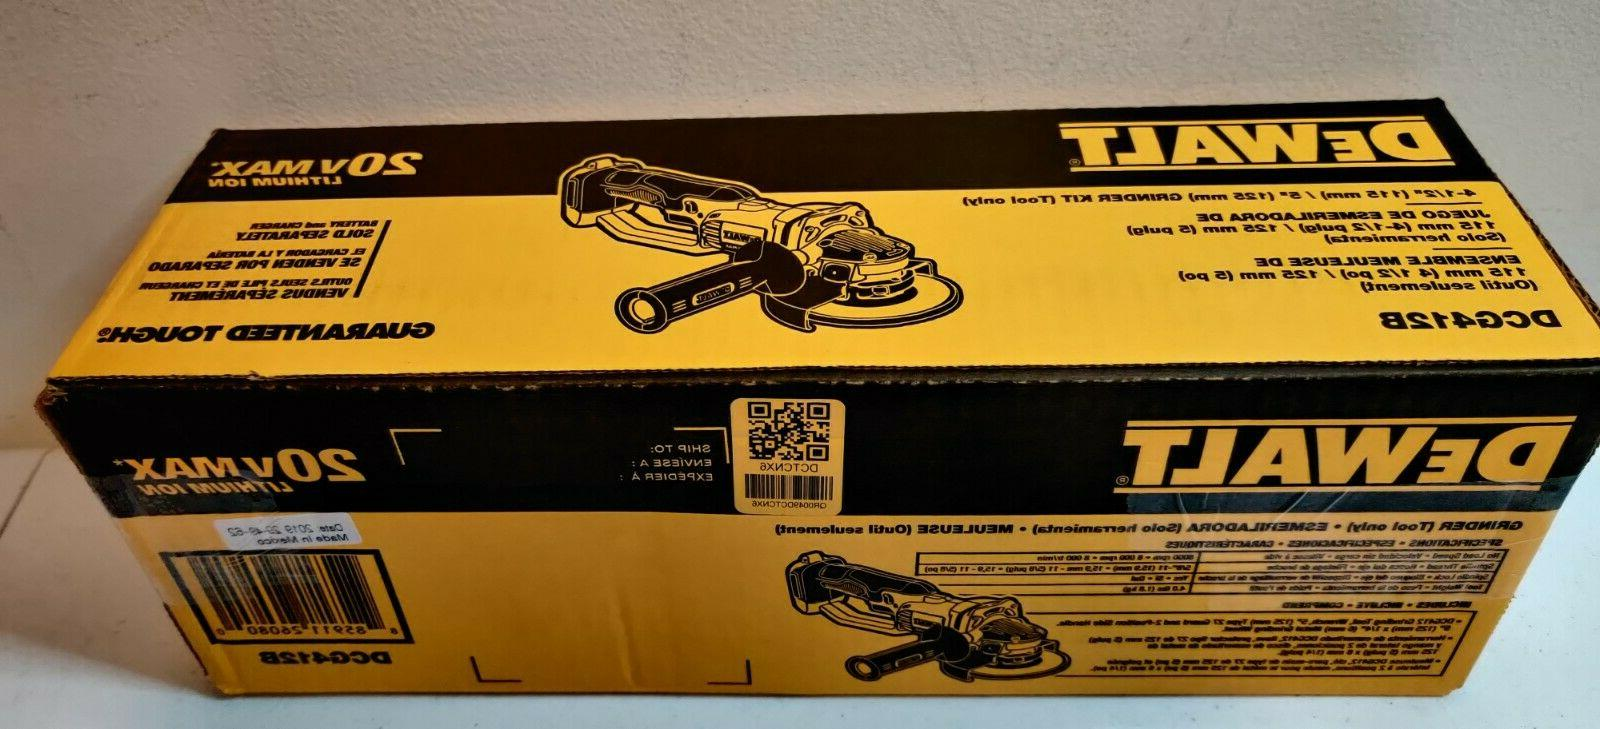 "Dewalt DCG412 Cordless Battery Angle Grinder 1/2"" Volt MAX Cut-Off"